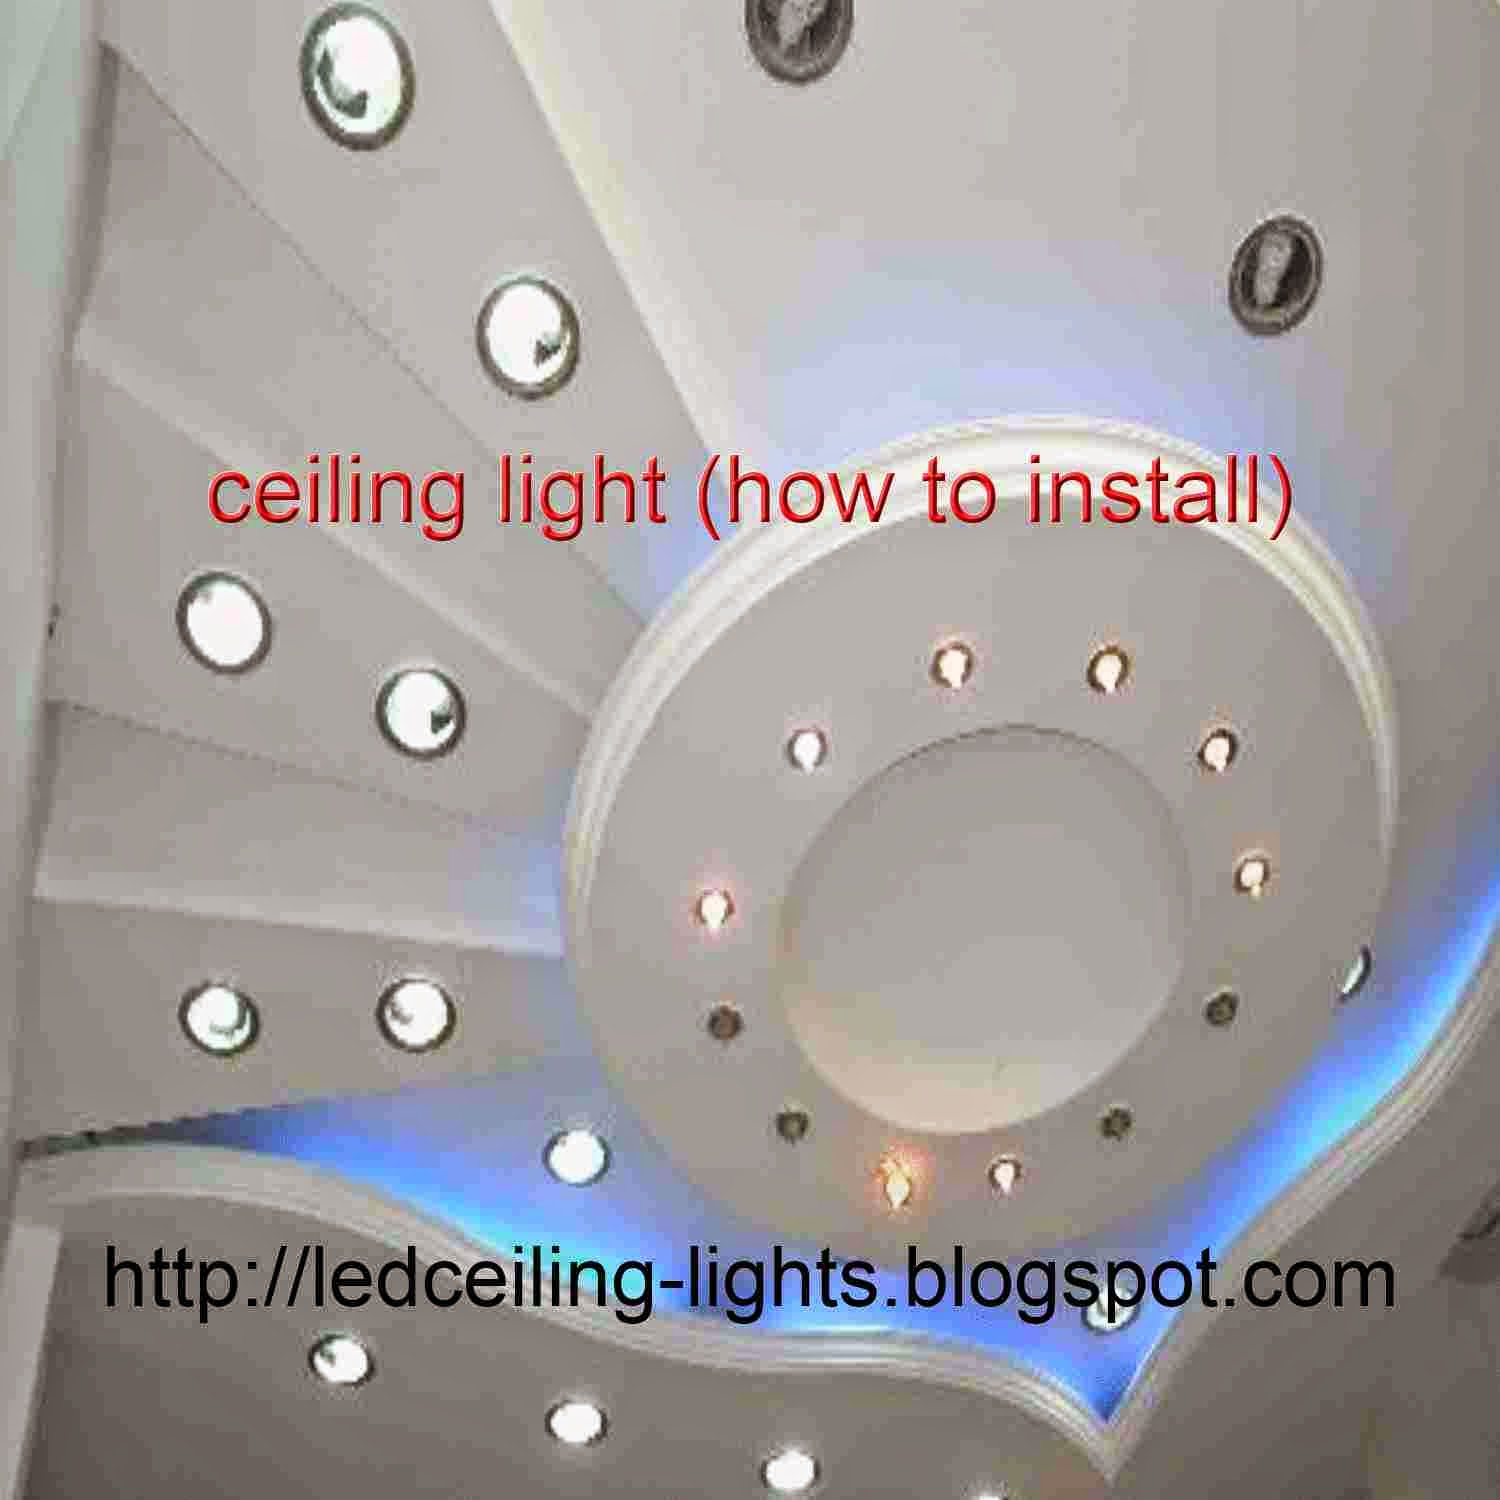 Different Types Of Track Lighting Fixtures To Install: Ceiling Light (how To Install)